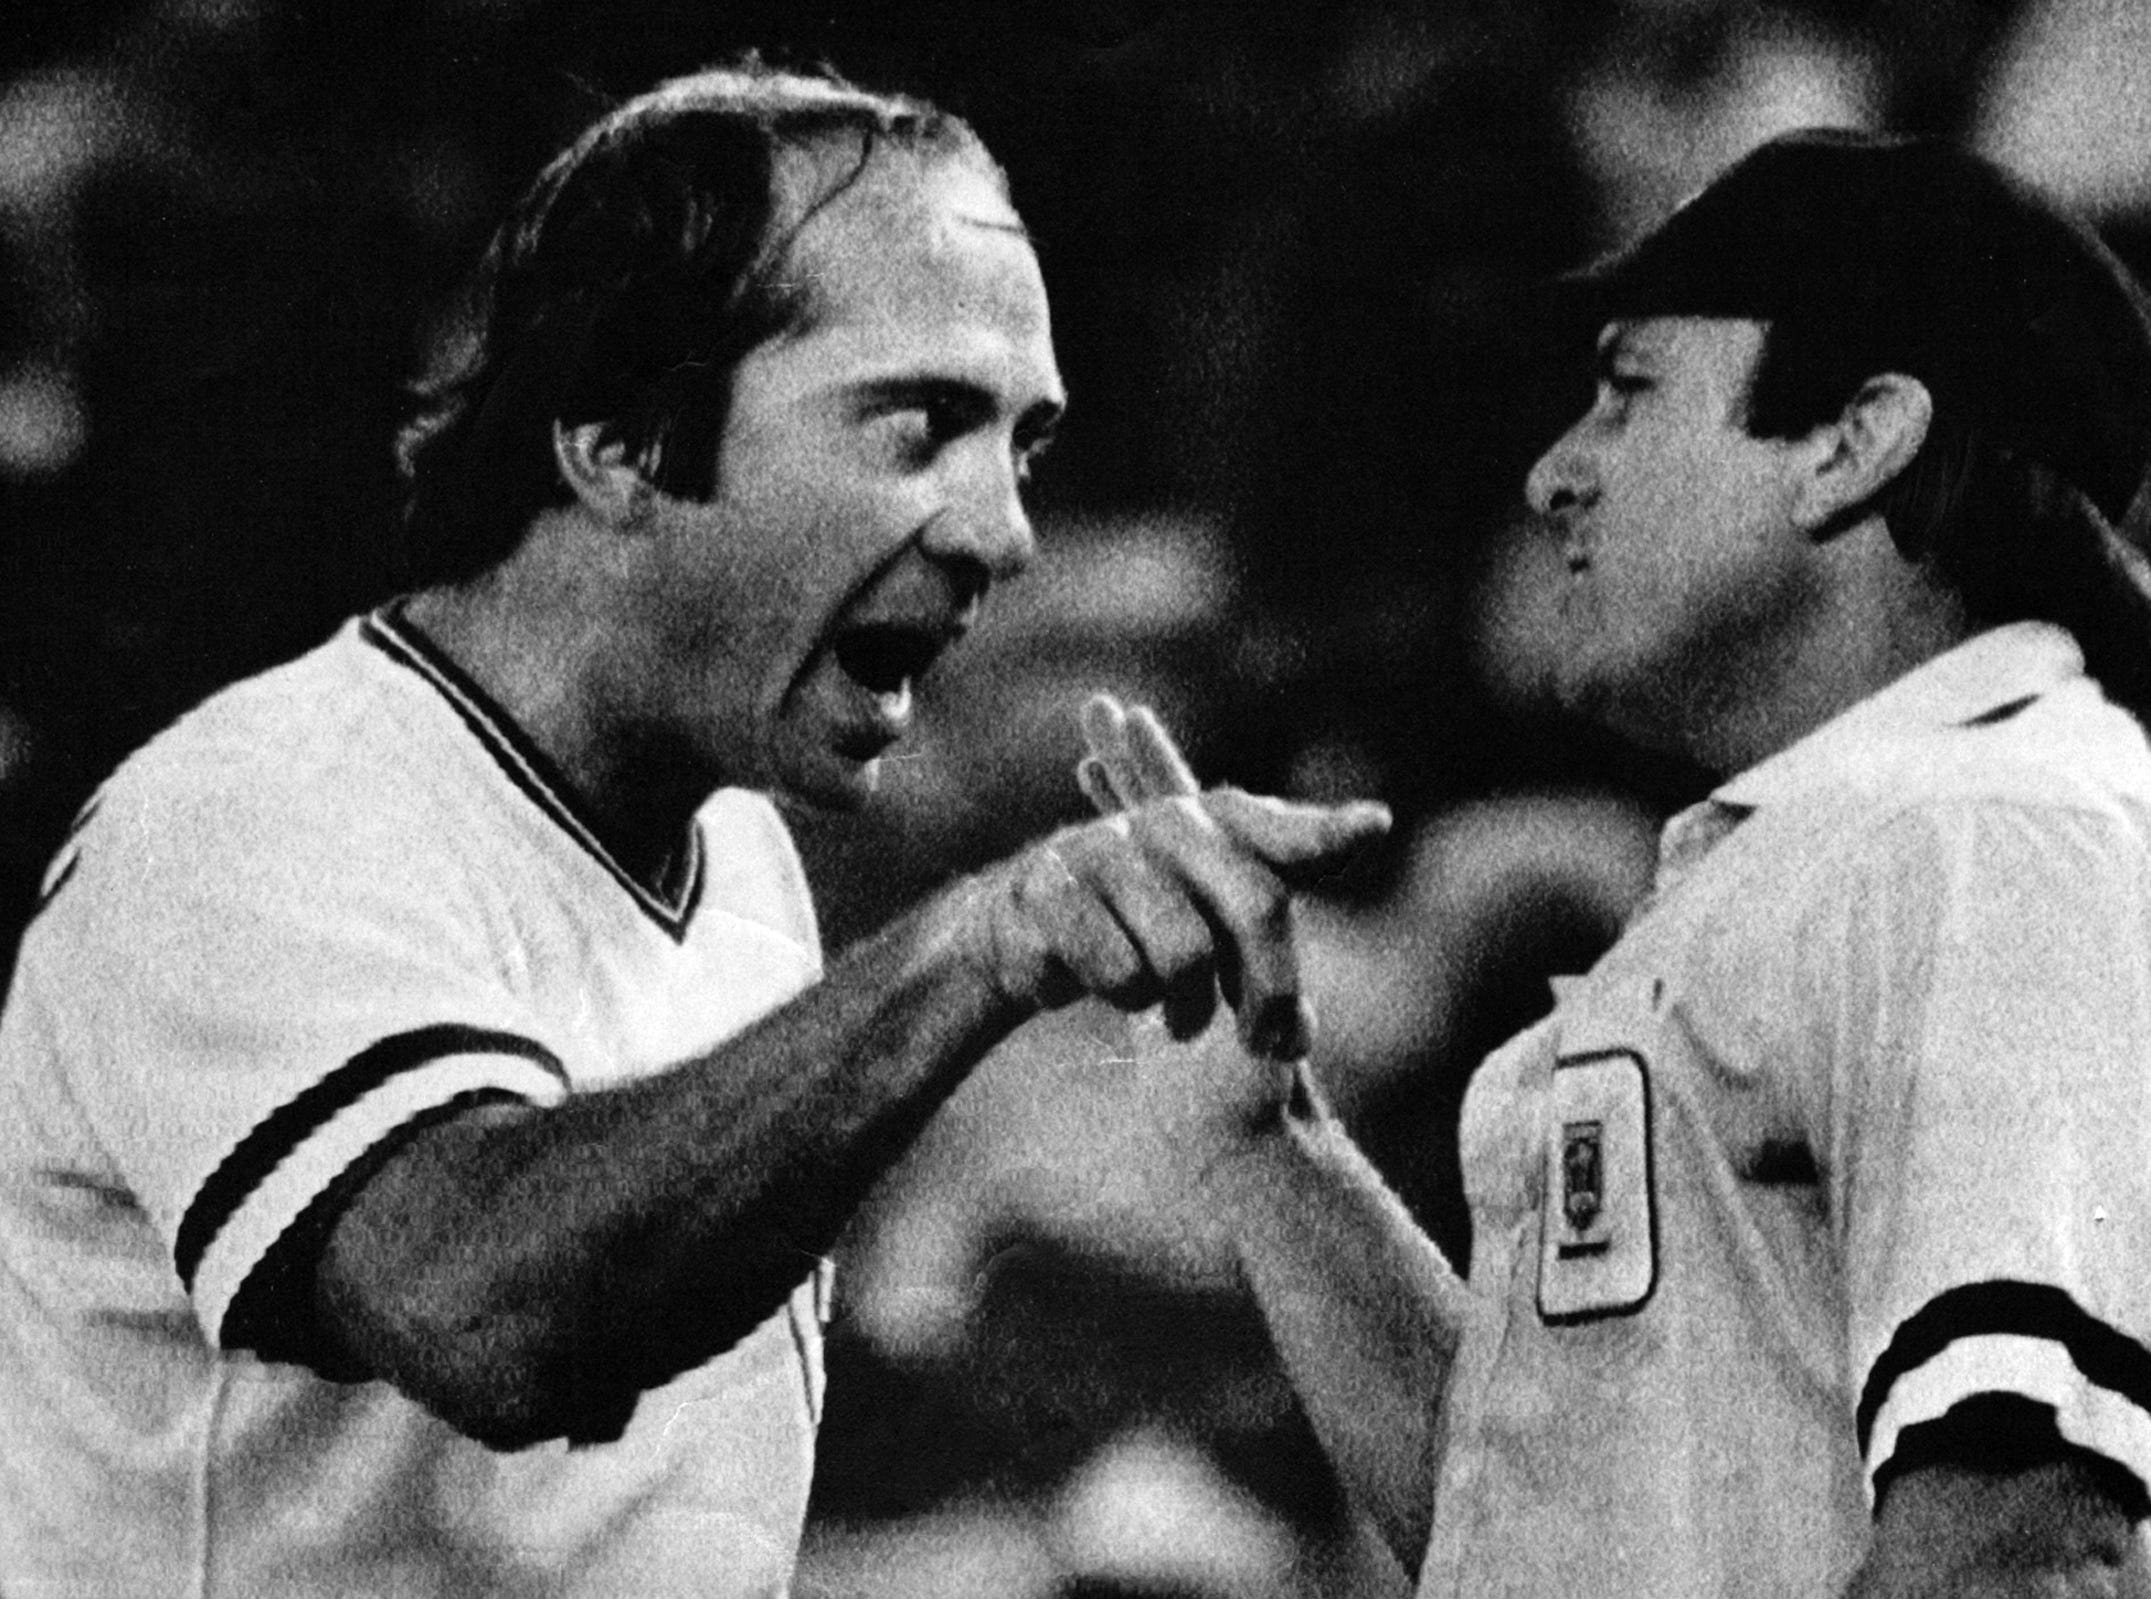 SEPTEMBER 17, 1982: Cincinnati Reds third baseman Johnny Bench makes a rather emphatic point with home plate umpire Ed Montague during the third inning of a game against the Atlanta Braves, Friday night in Cincinnati. Bench had jumped into an argument between Reds hitter Ron Oester and Montague over a called strike. Tempers were calmed and play soon resumed. The Enquirer/Ed Reinke scanned August 6, 2013